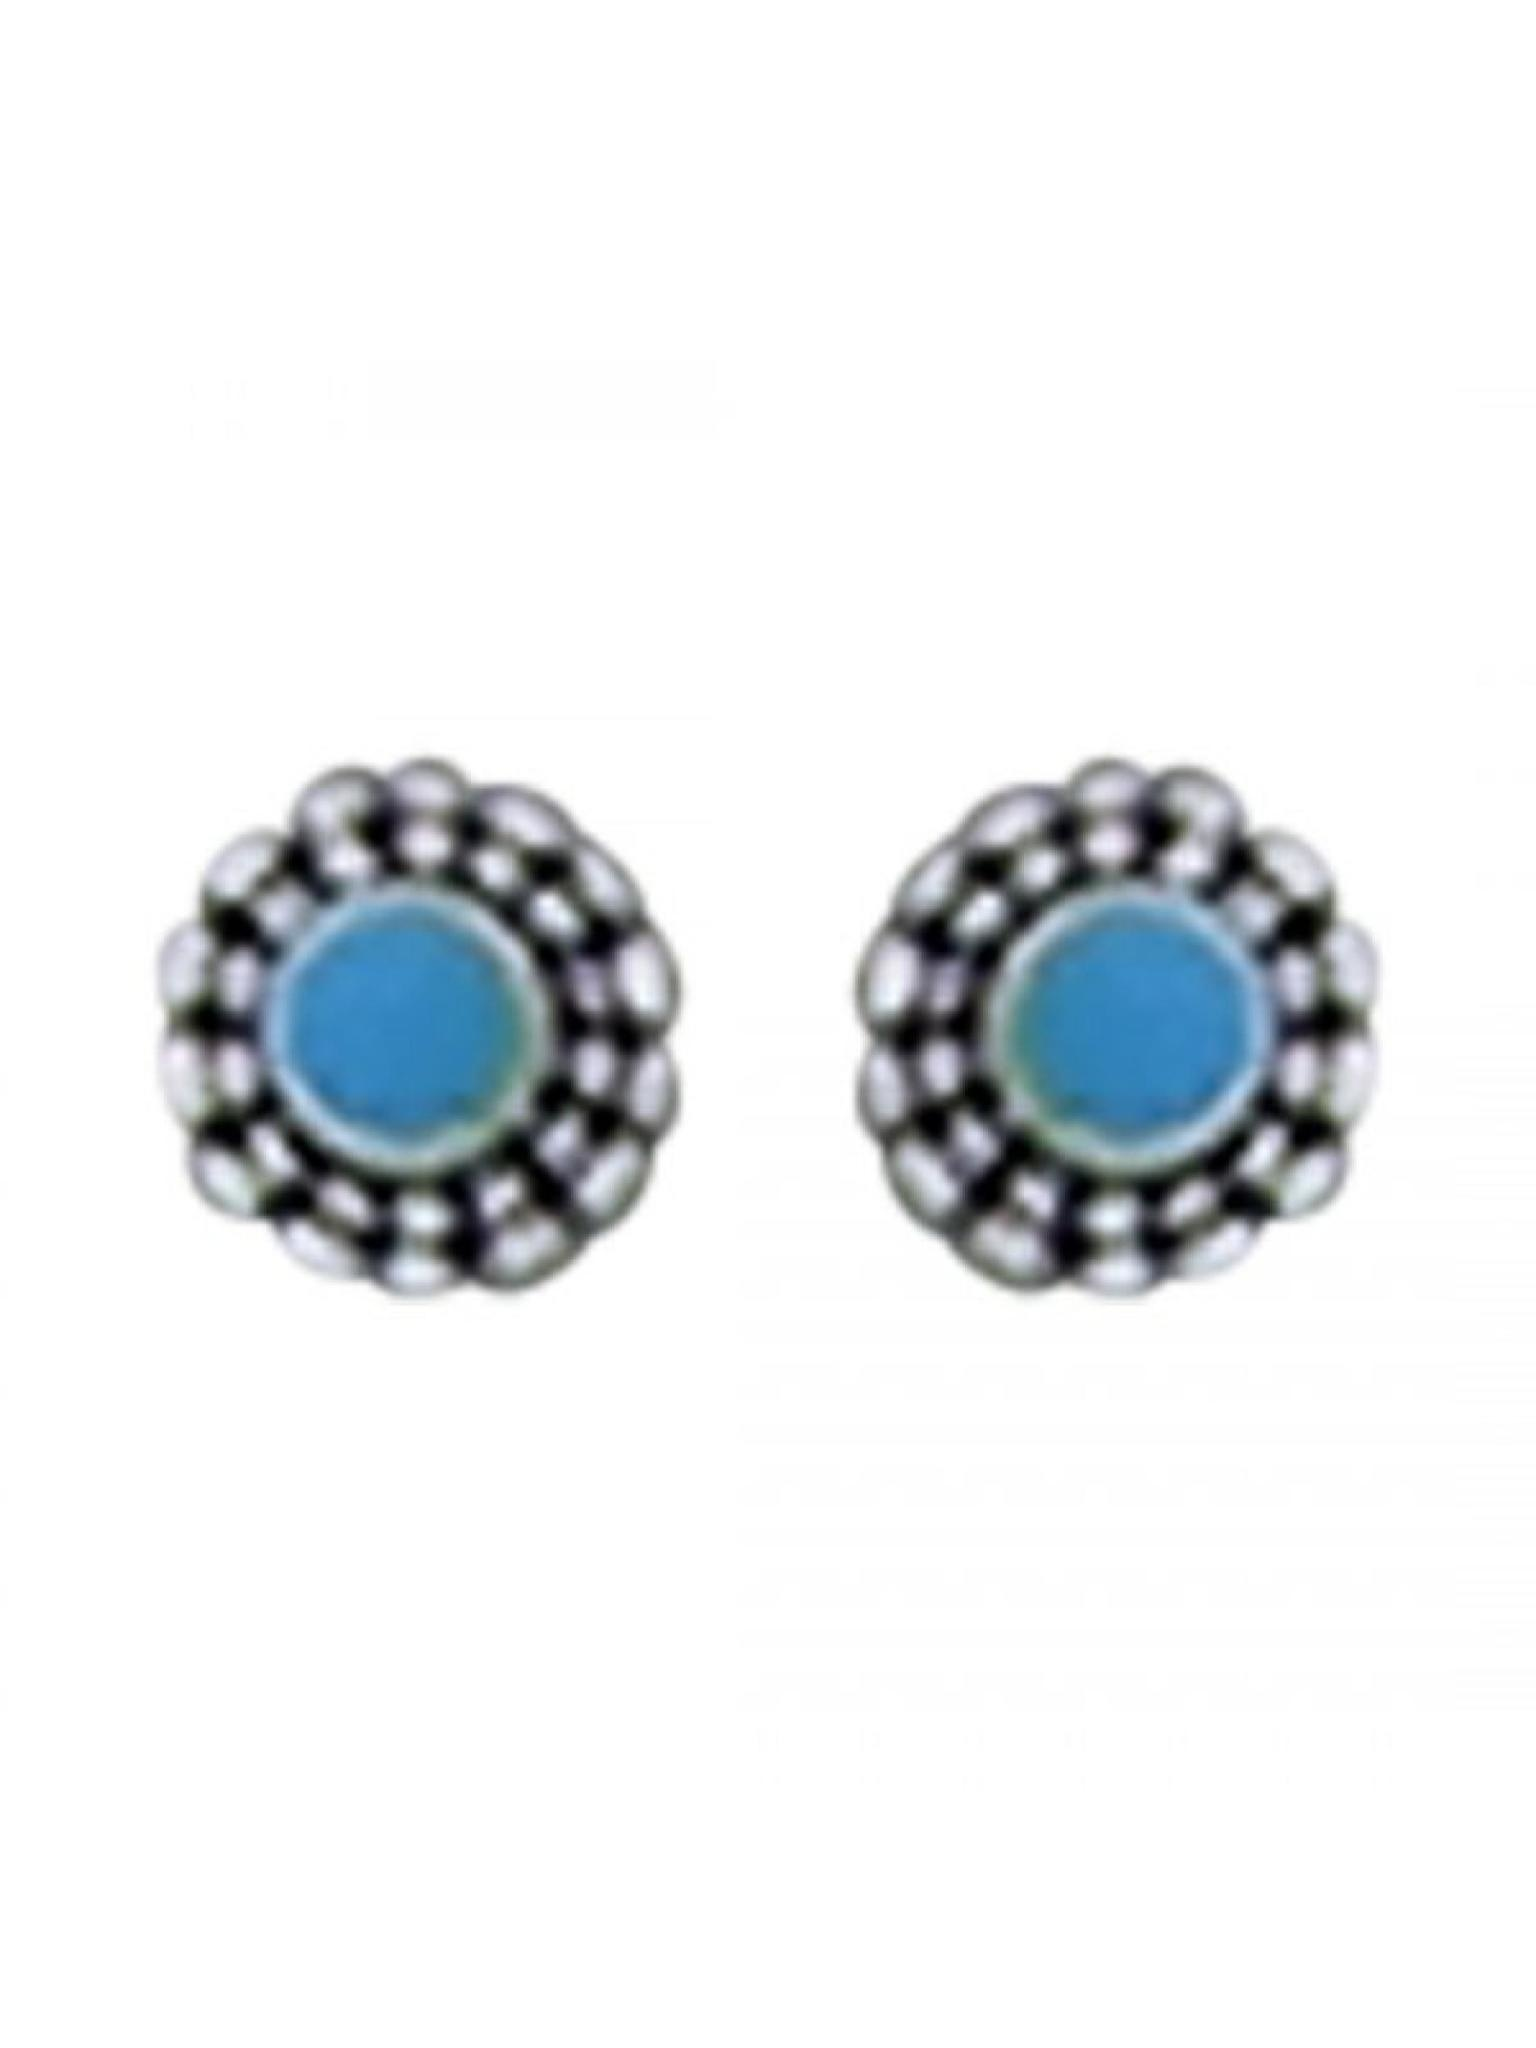 Acomo Jewelry Flower with Blue Center Stud Earring